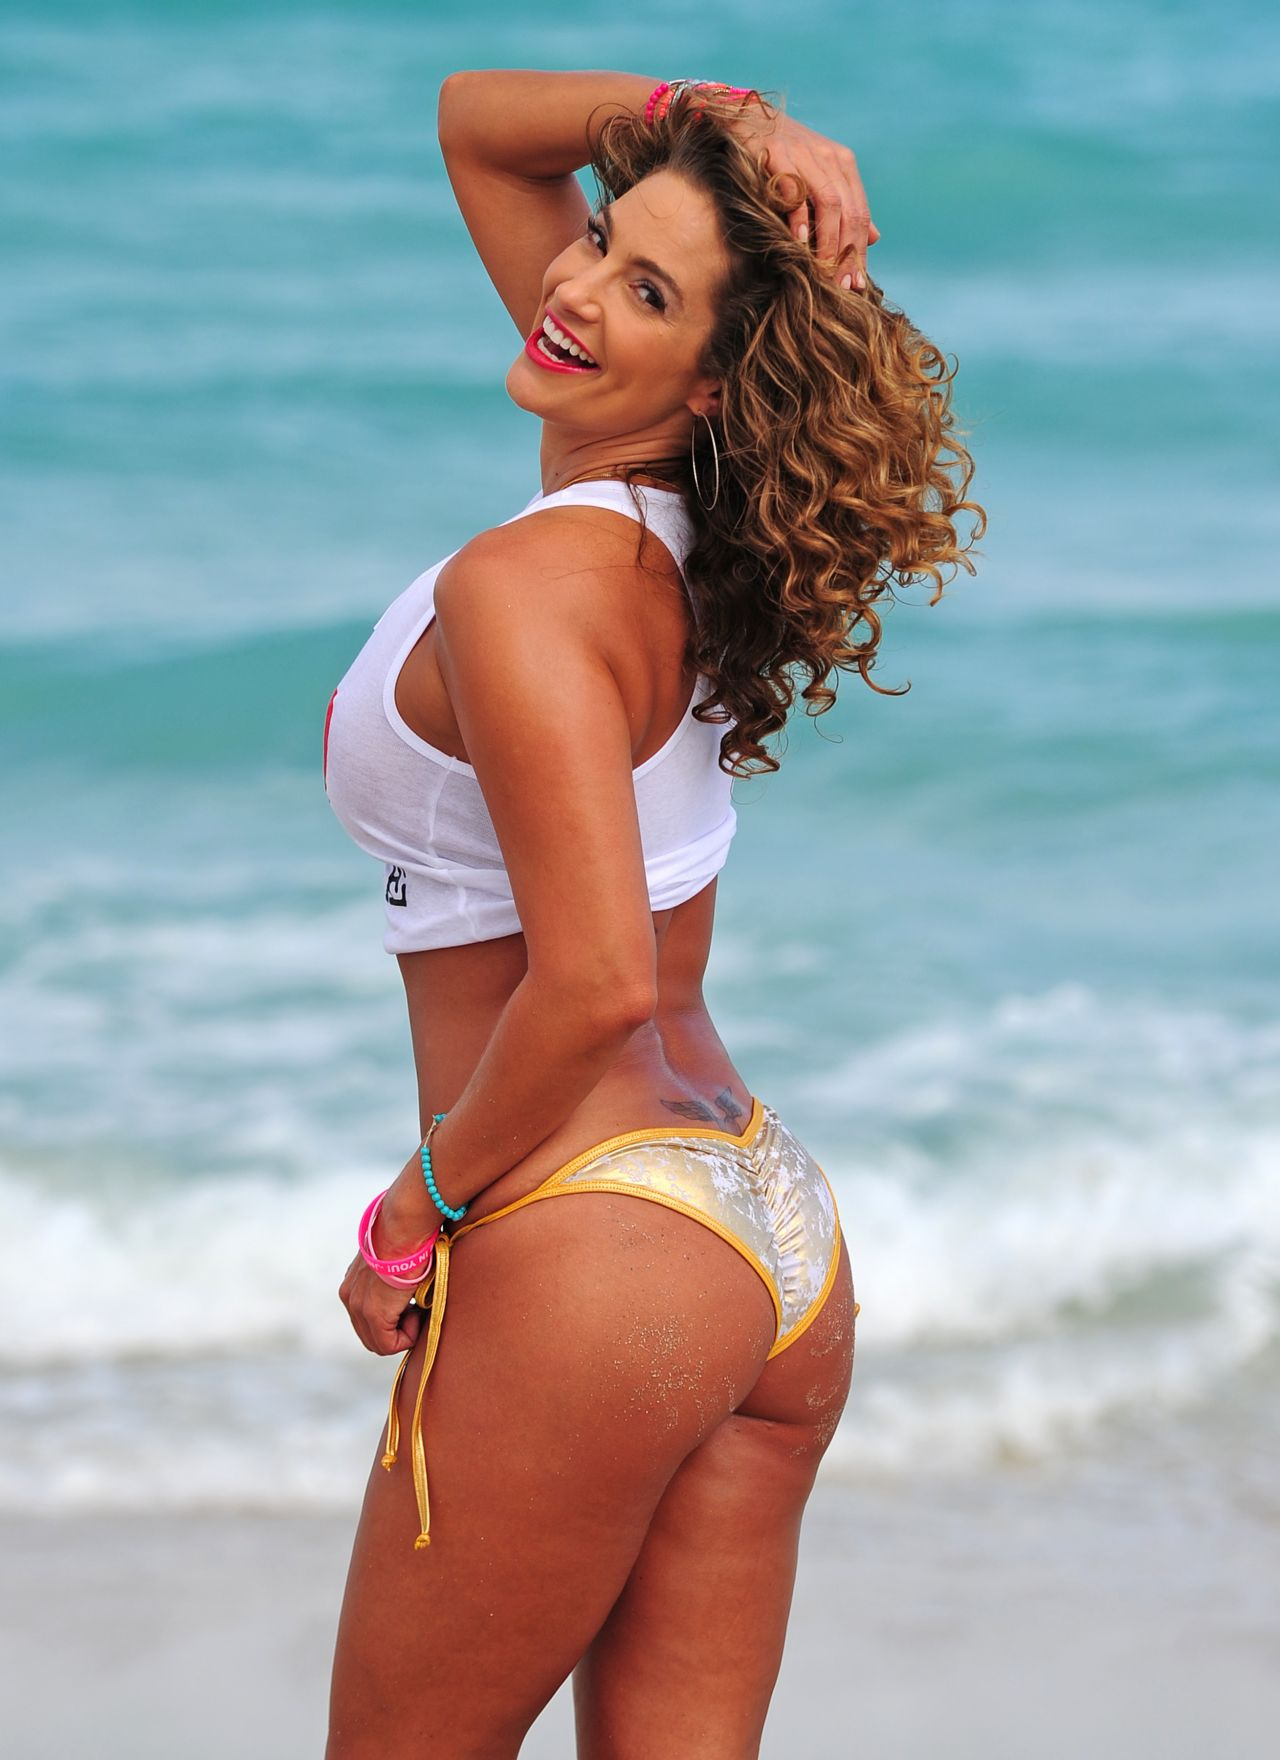 Jennifer Nicole Lee Photoshoot - Miami Beach - March 2014